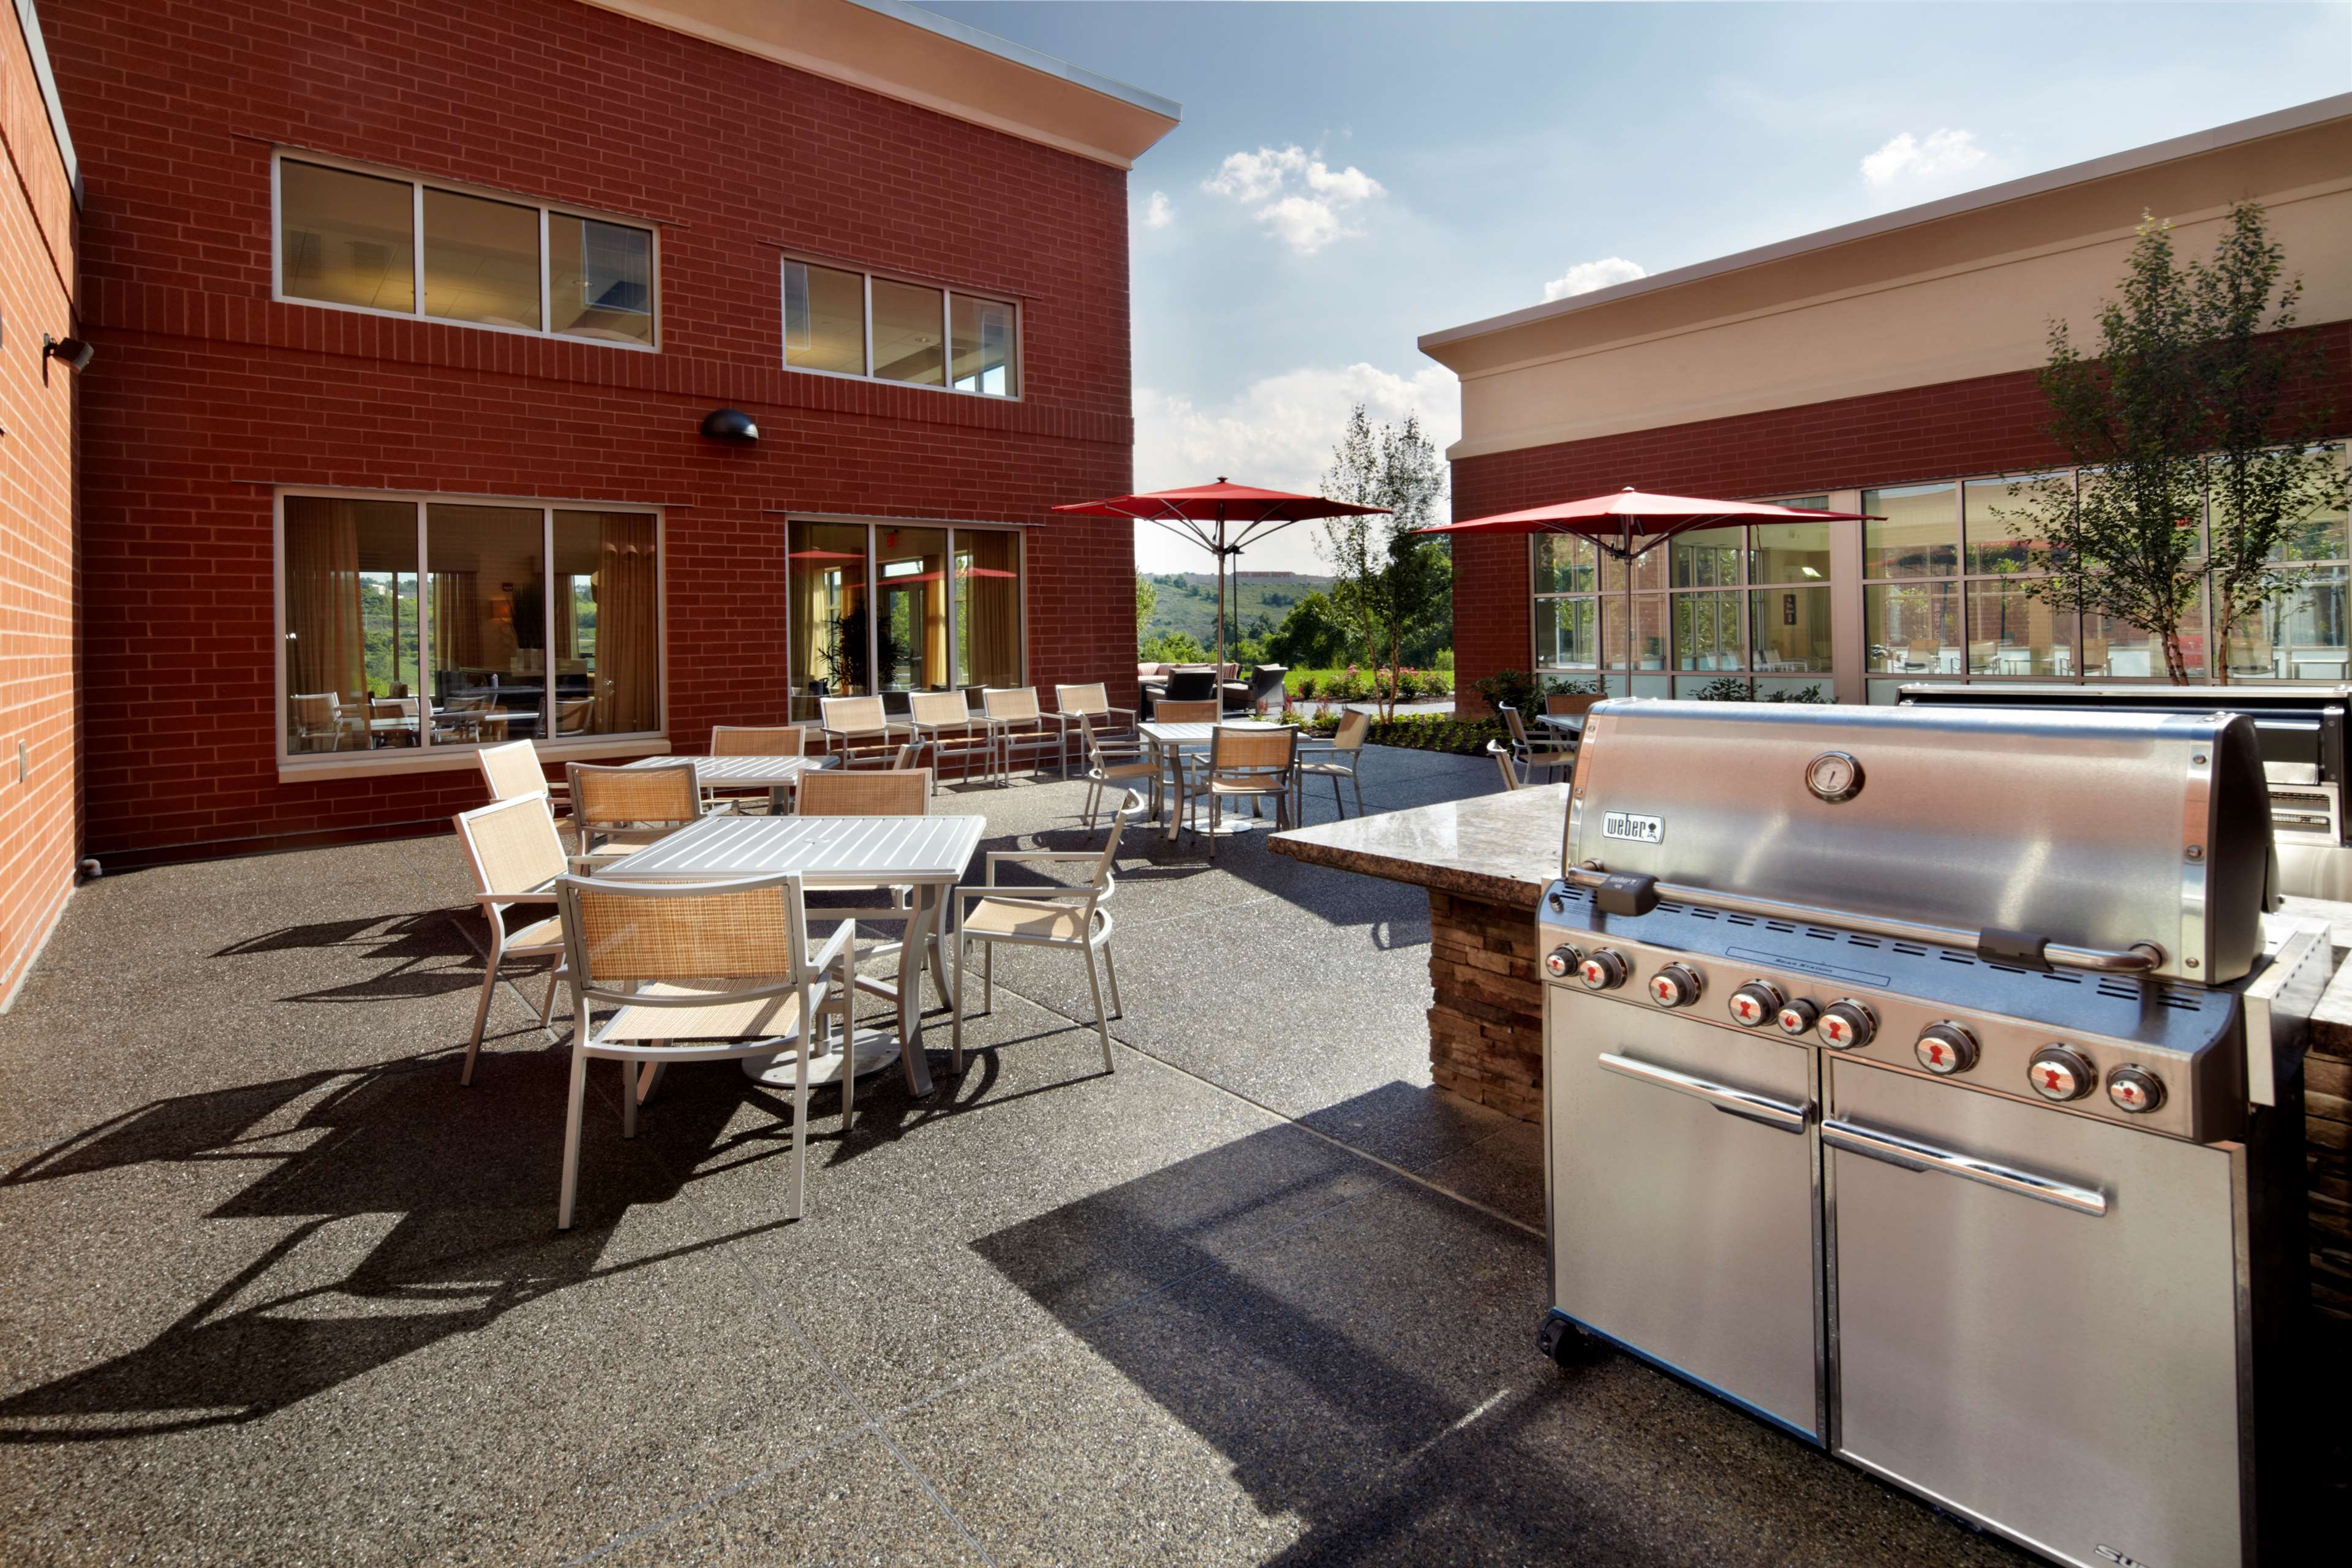 Homewood Suites by Hilton Pittsburgh Airport Robinson Mall Area PA image 26